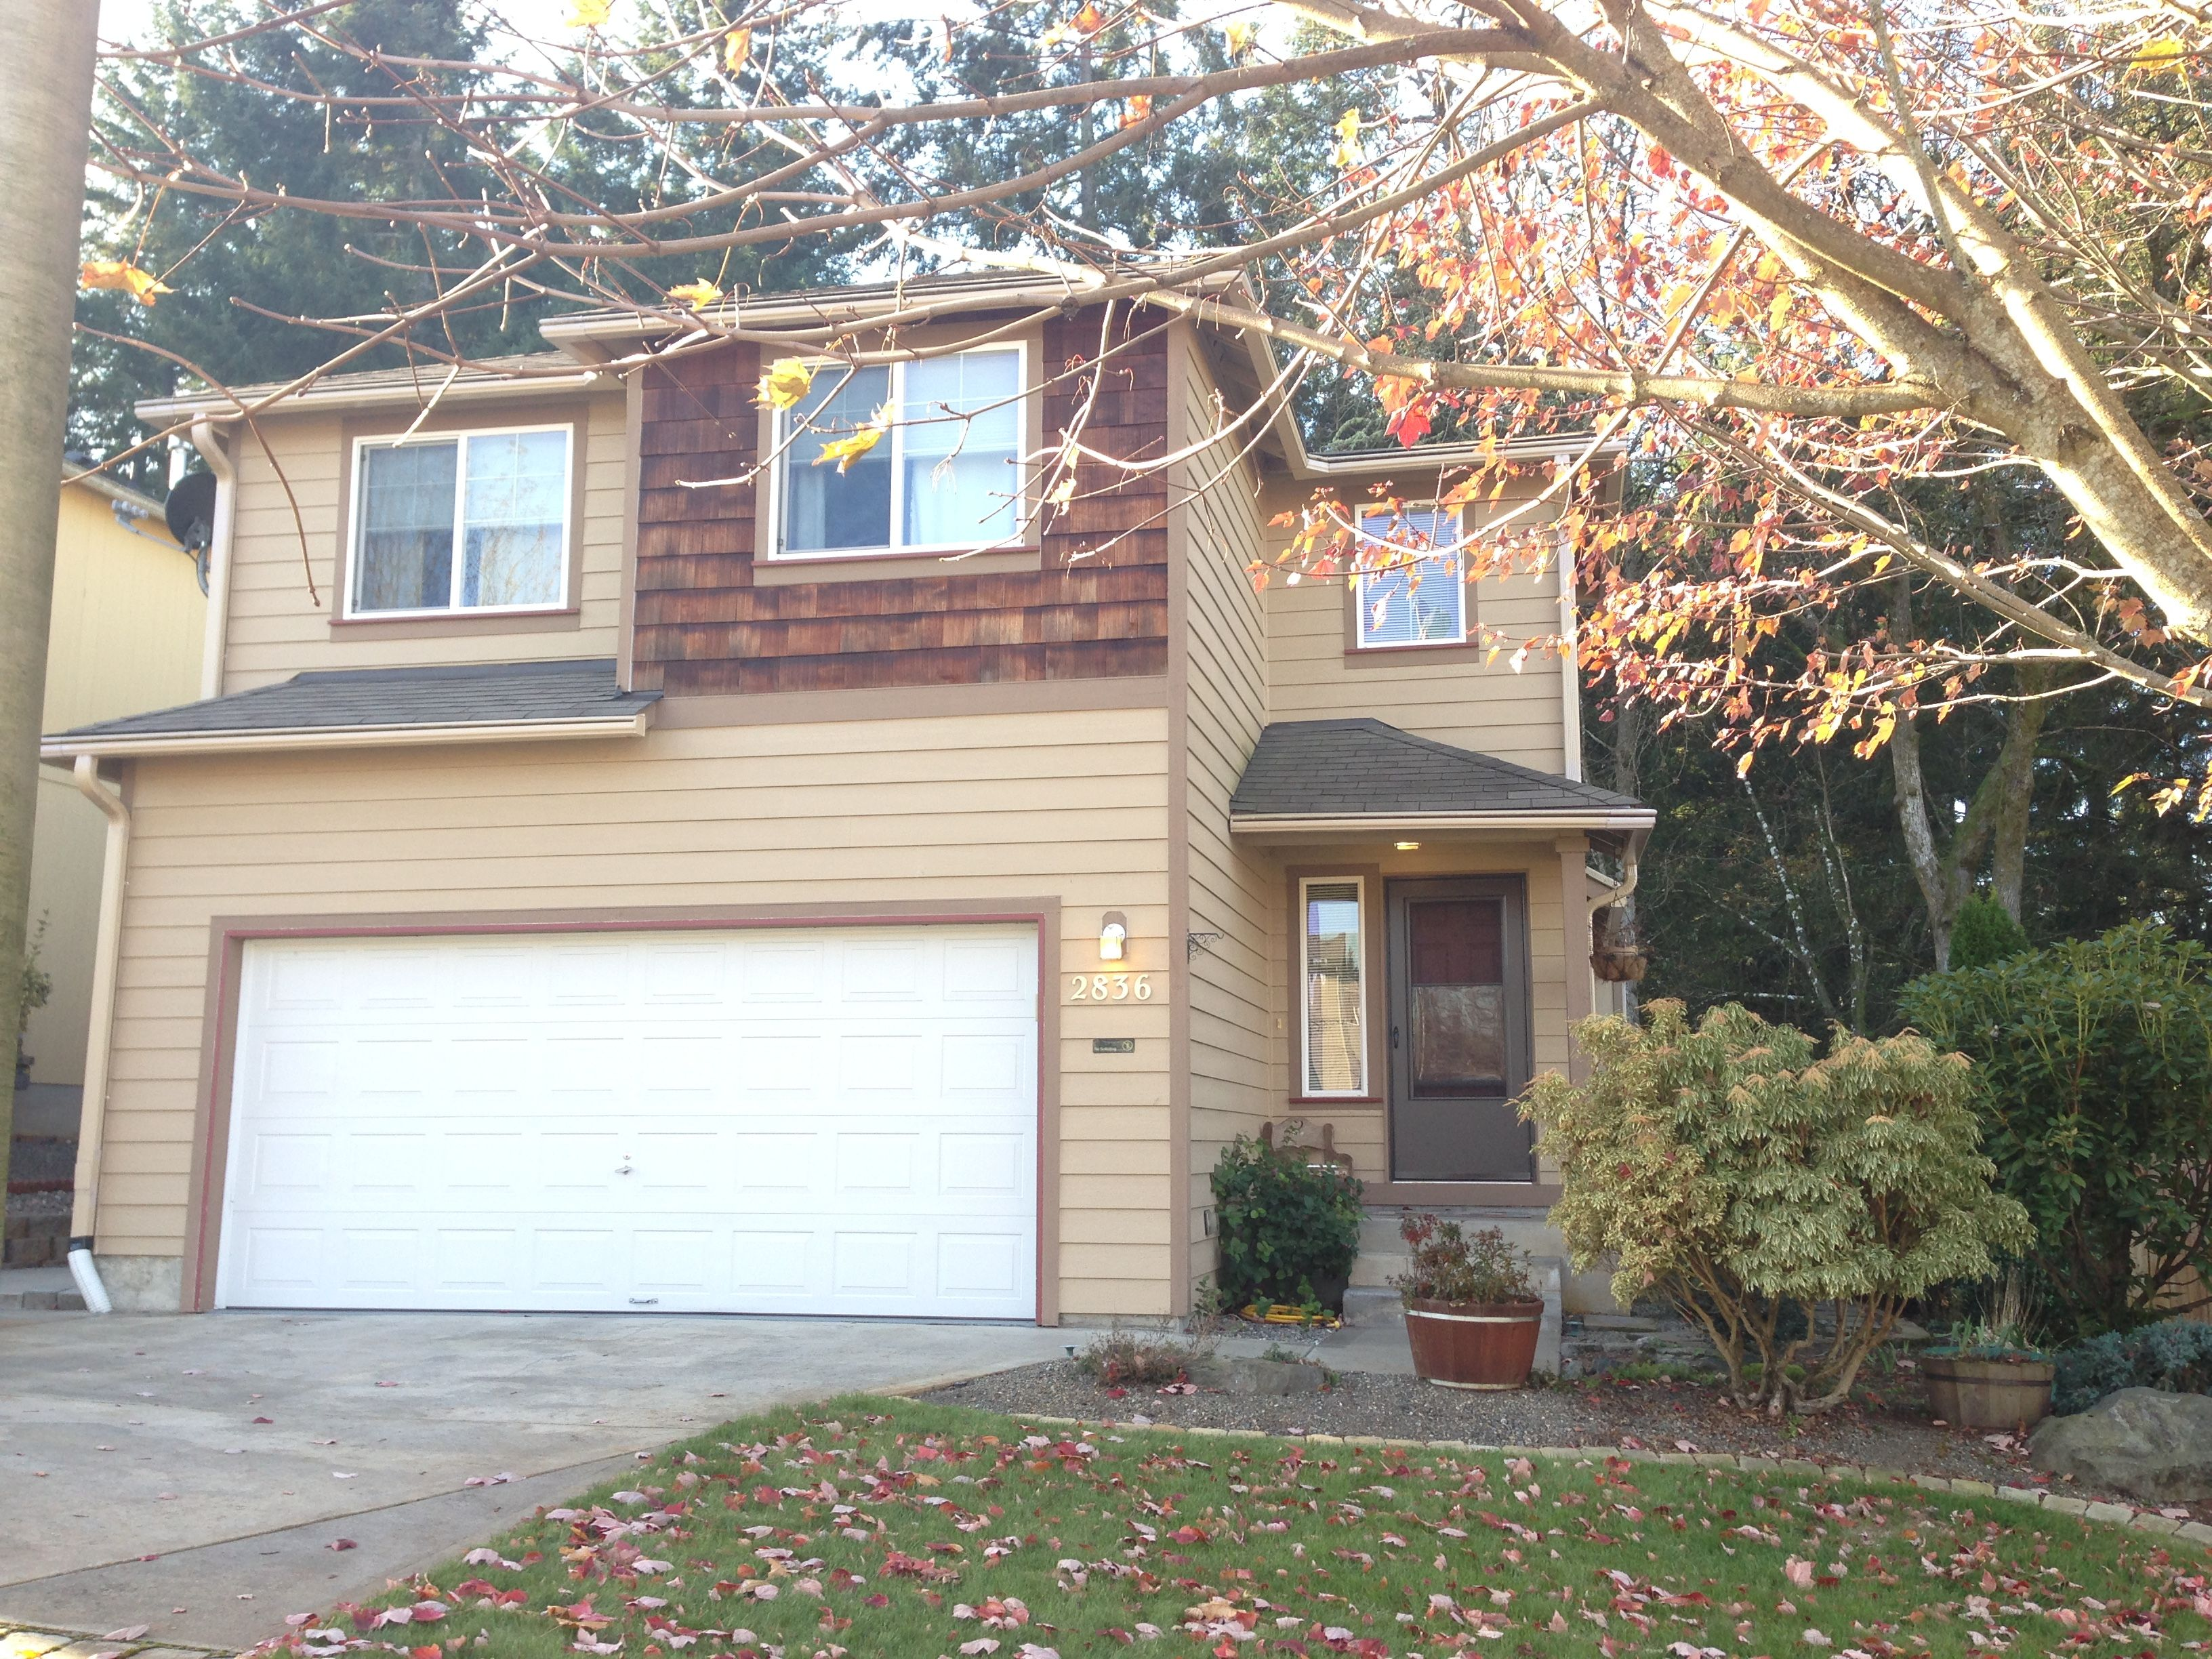 New Homes For Sale Tumwater Wa